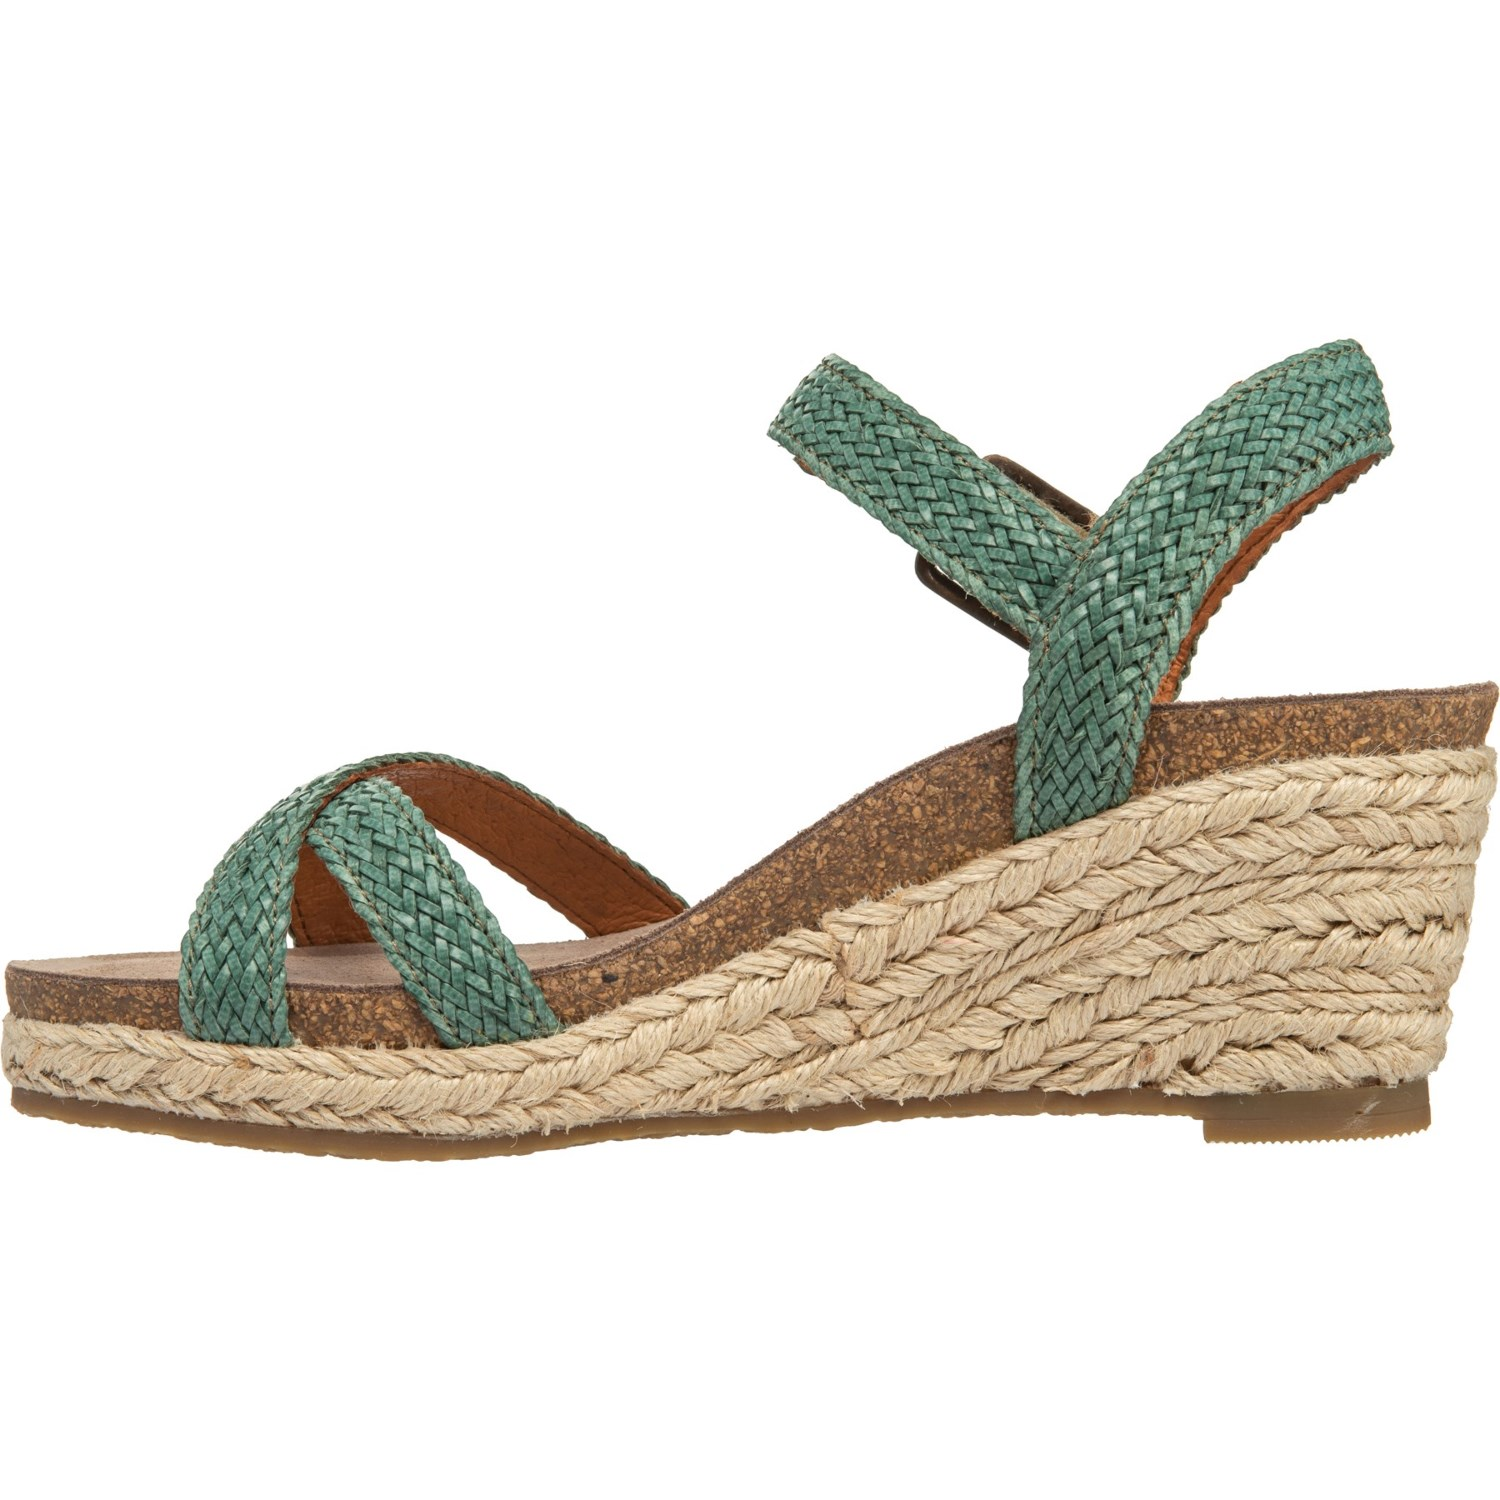 0cda00ee3 Taos Footwear Made in Portugal Hey Jute Wedge Sandals (For Women ...